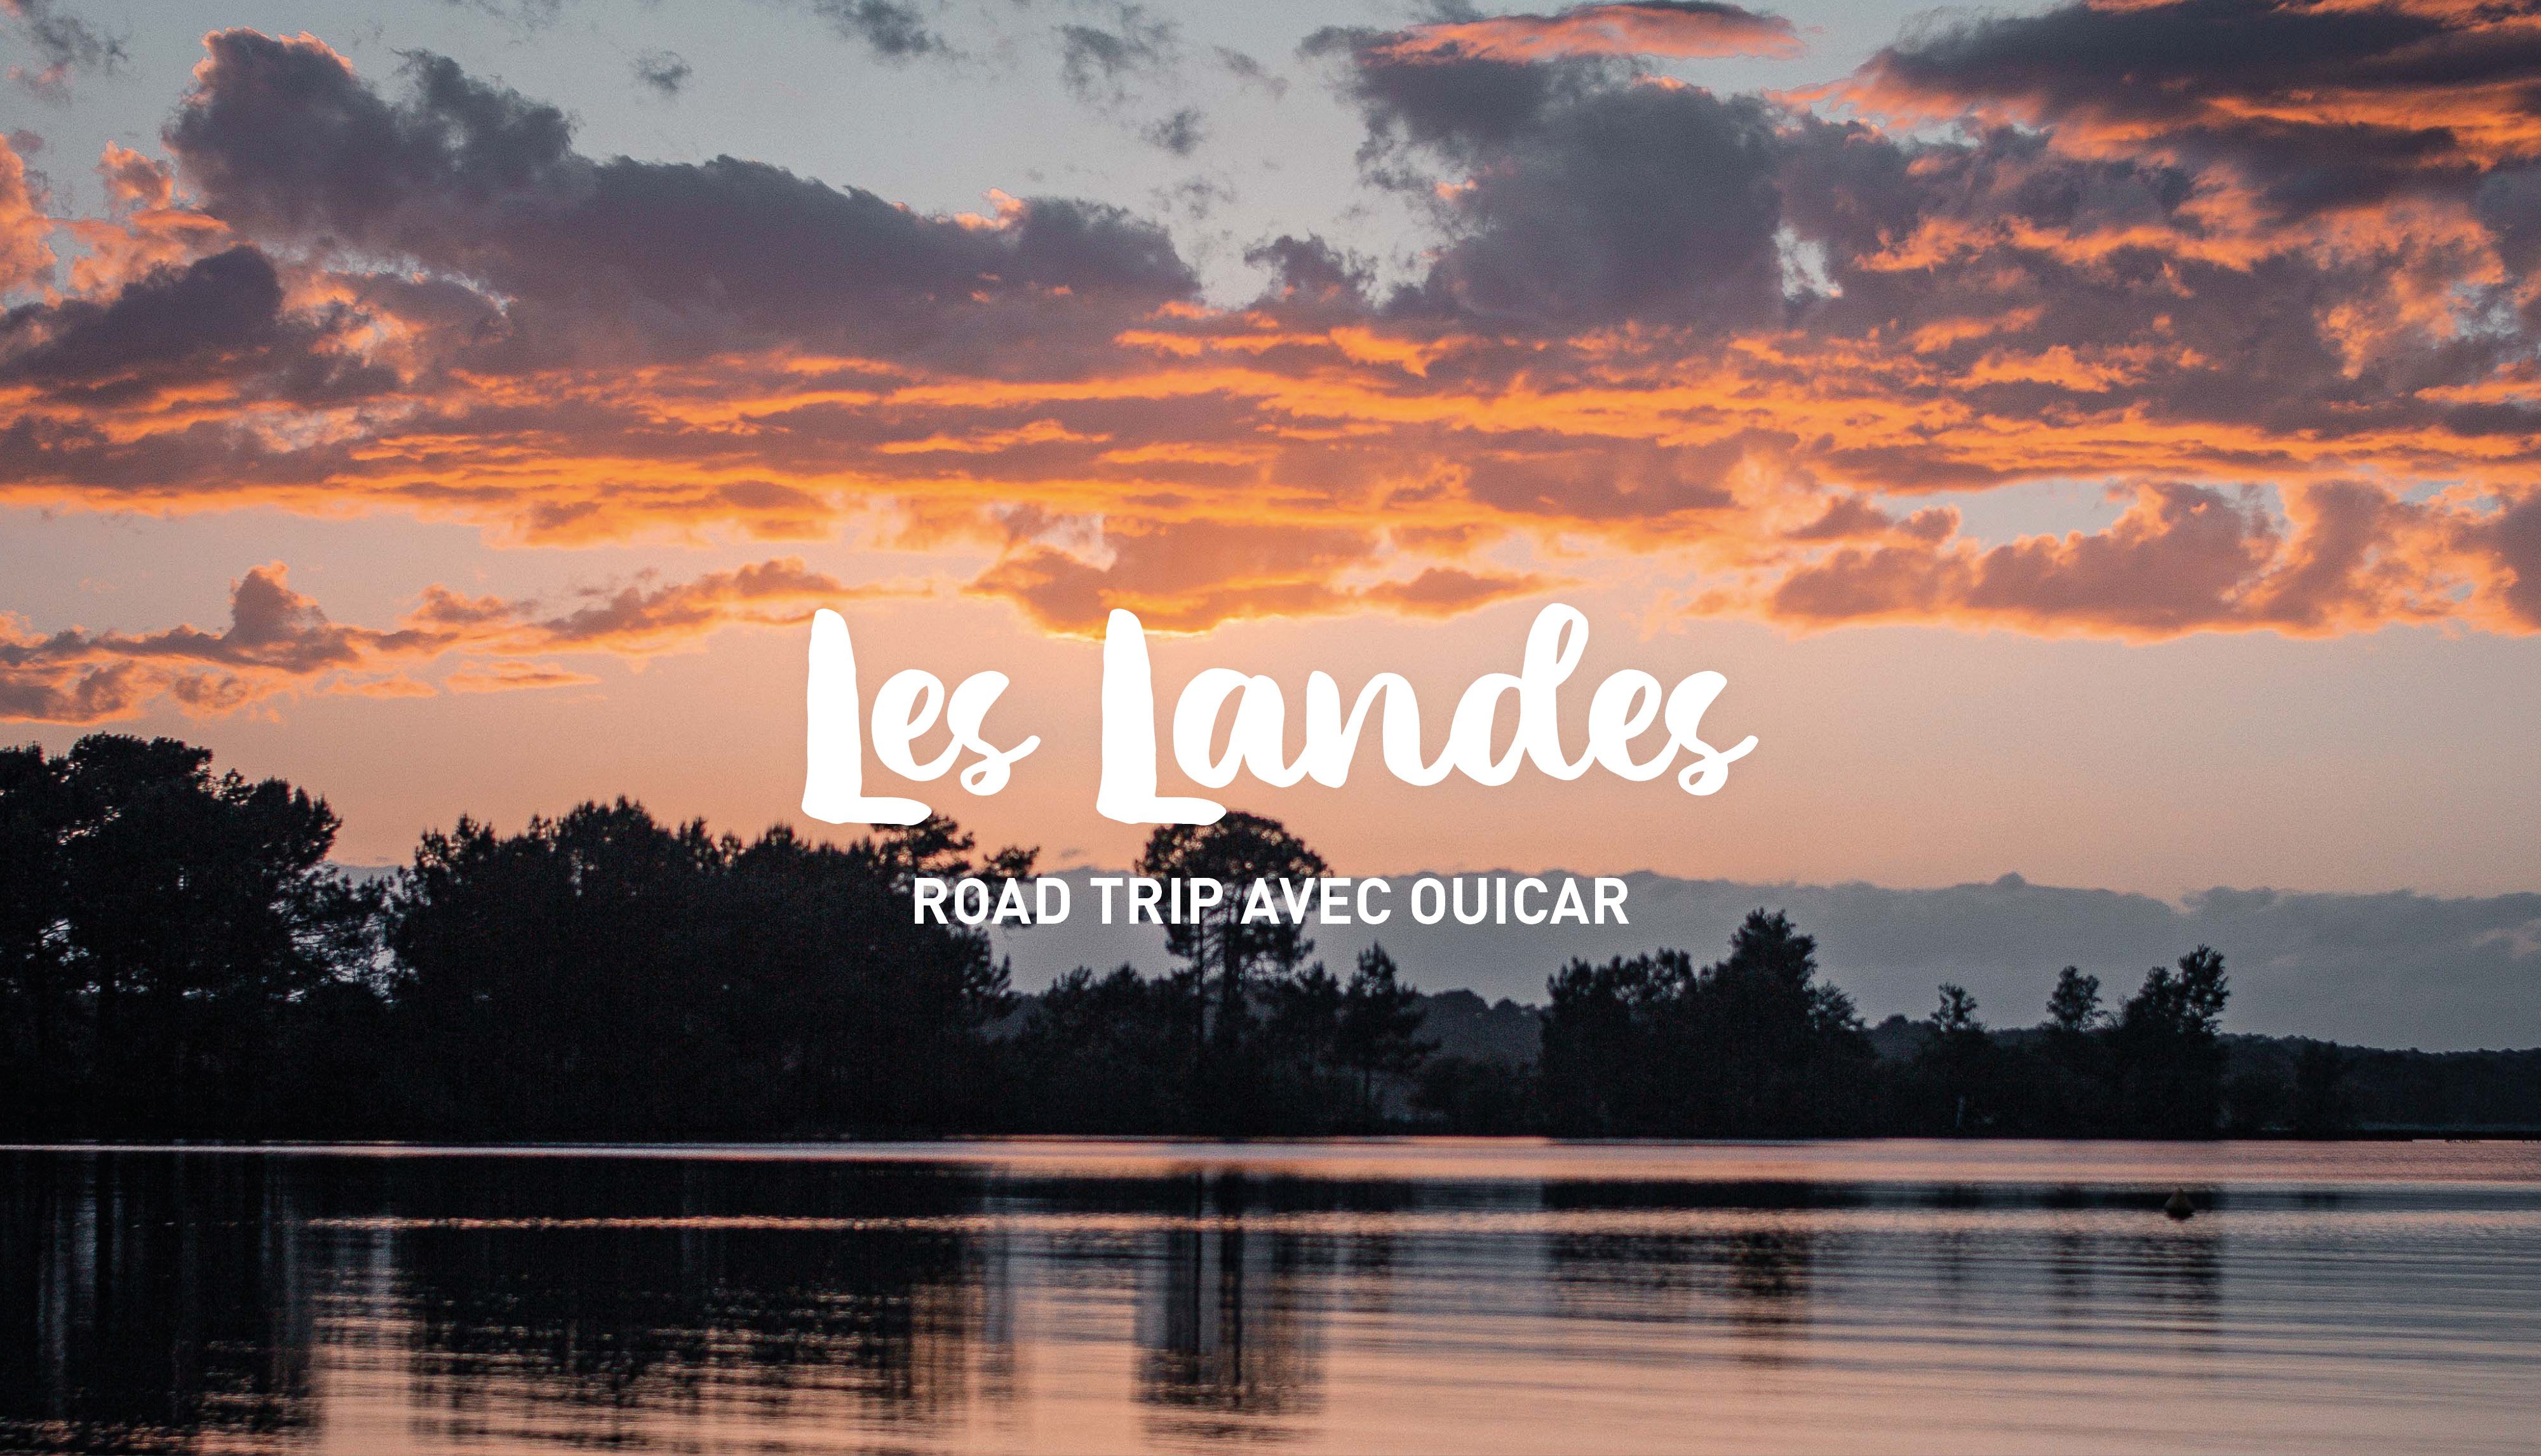 Road trip in the Landes